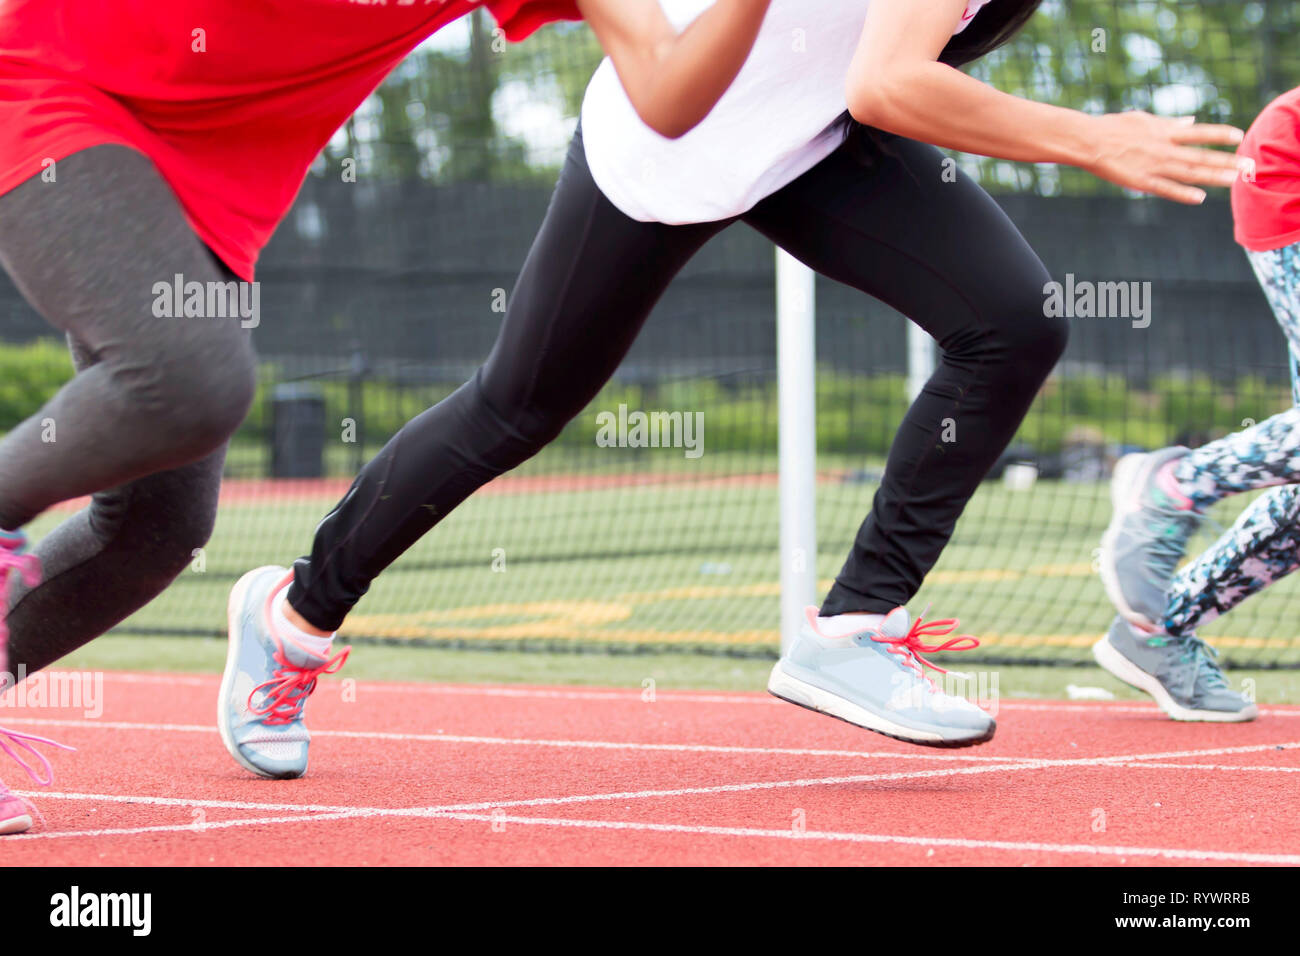 Three girls race each other sprinting at high school track and field practice outside on a red track. - Stock Image